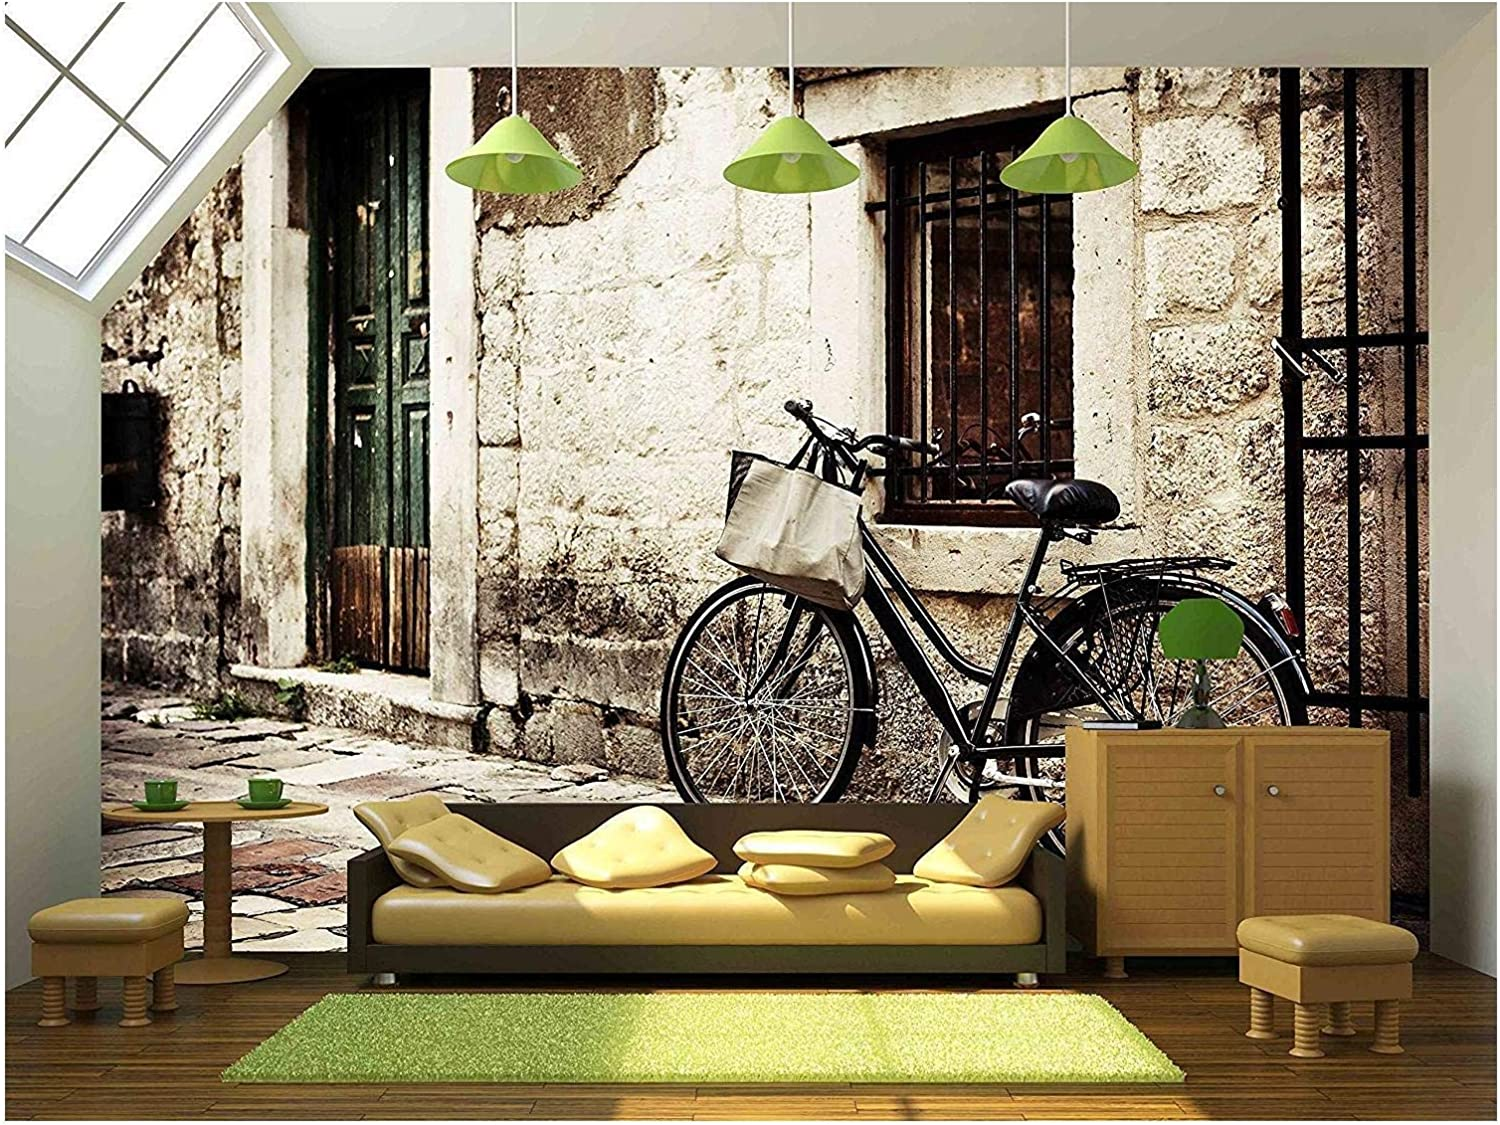 wall26 - Bicycle with a Shopping Bag on Handle Bar, Left Beside Old Stone Wall - Removable Wall Mural | Self-Adhesive Large Wallpaper - 66x96 inches